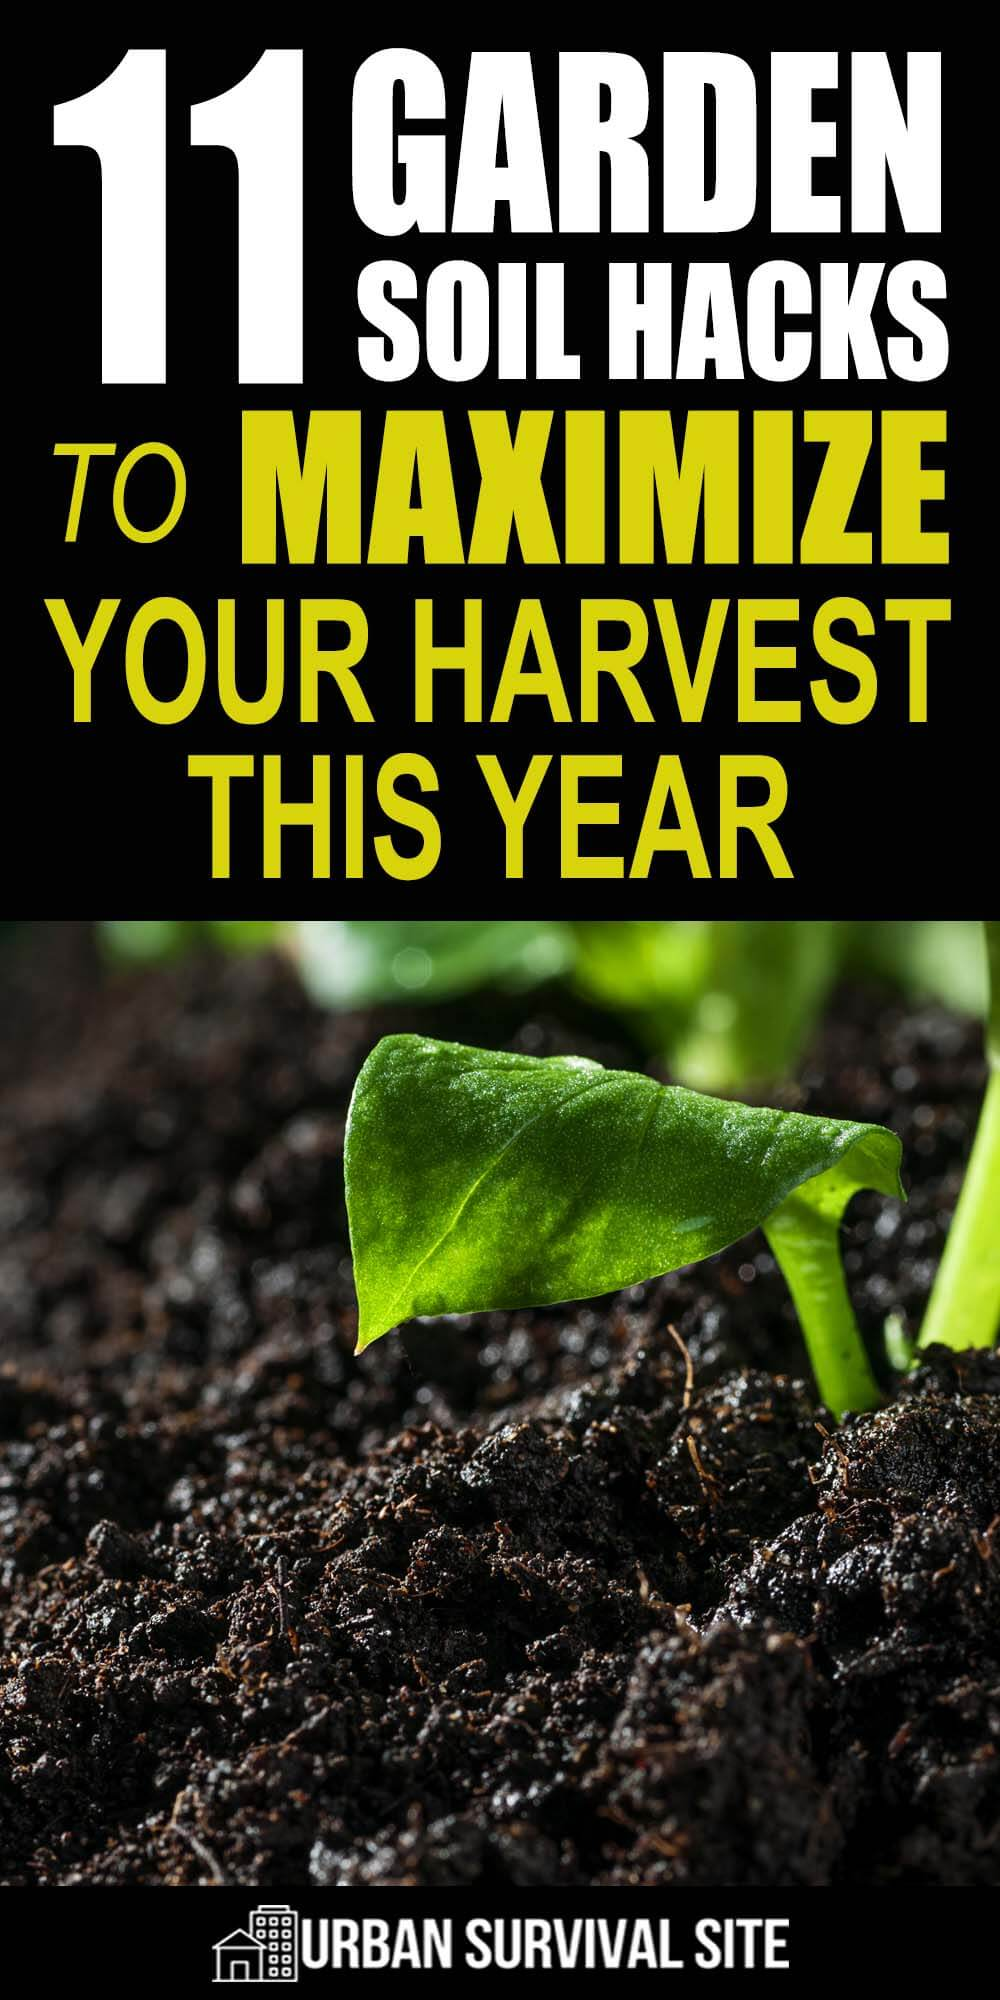 11 Garden Soil Hacks To Maximize Your Harvest This Year